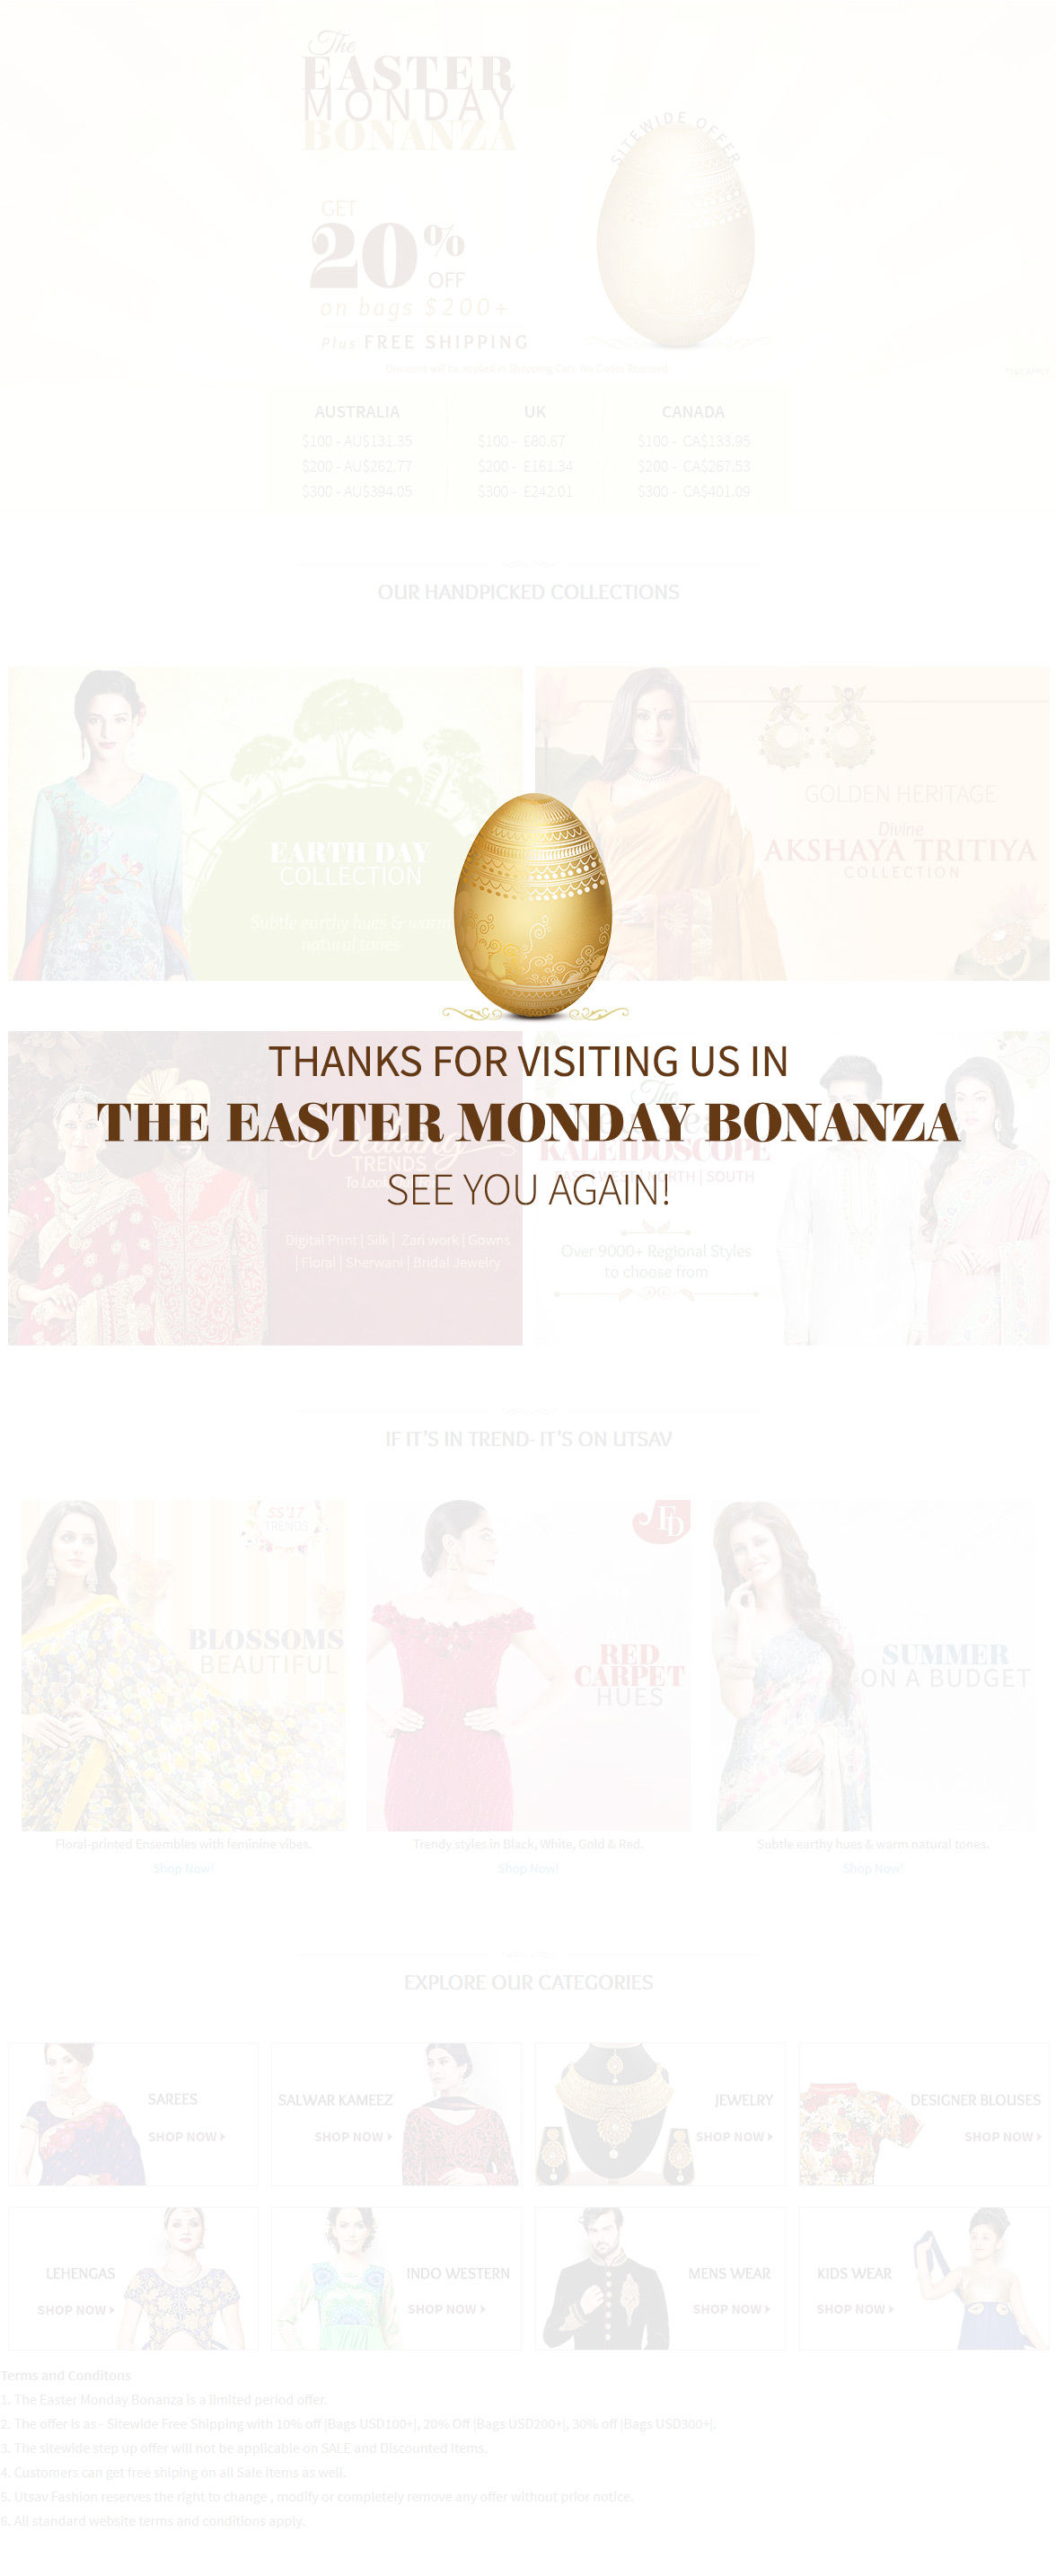 Easter Bonanza offer up to 30% Off plus Free Shipping. Shop!